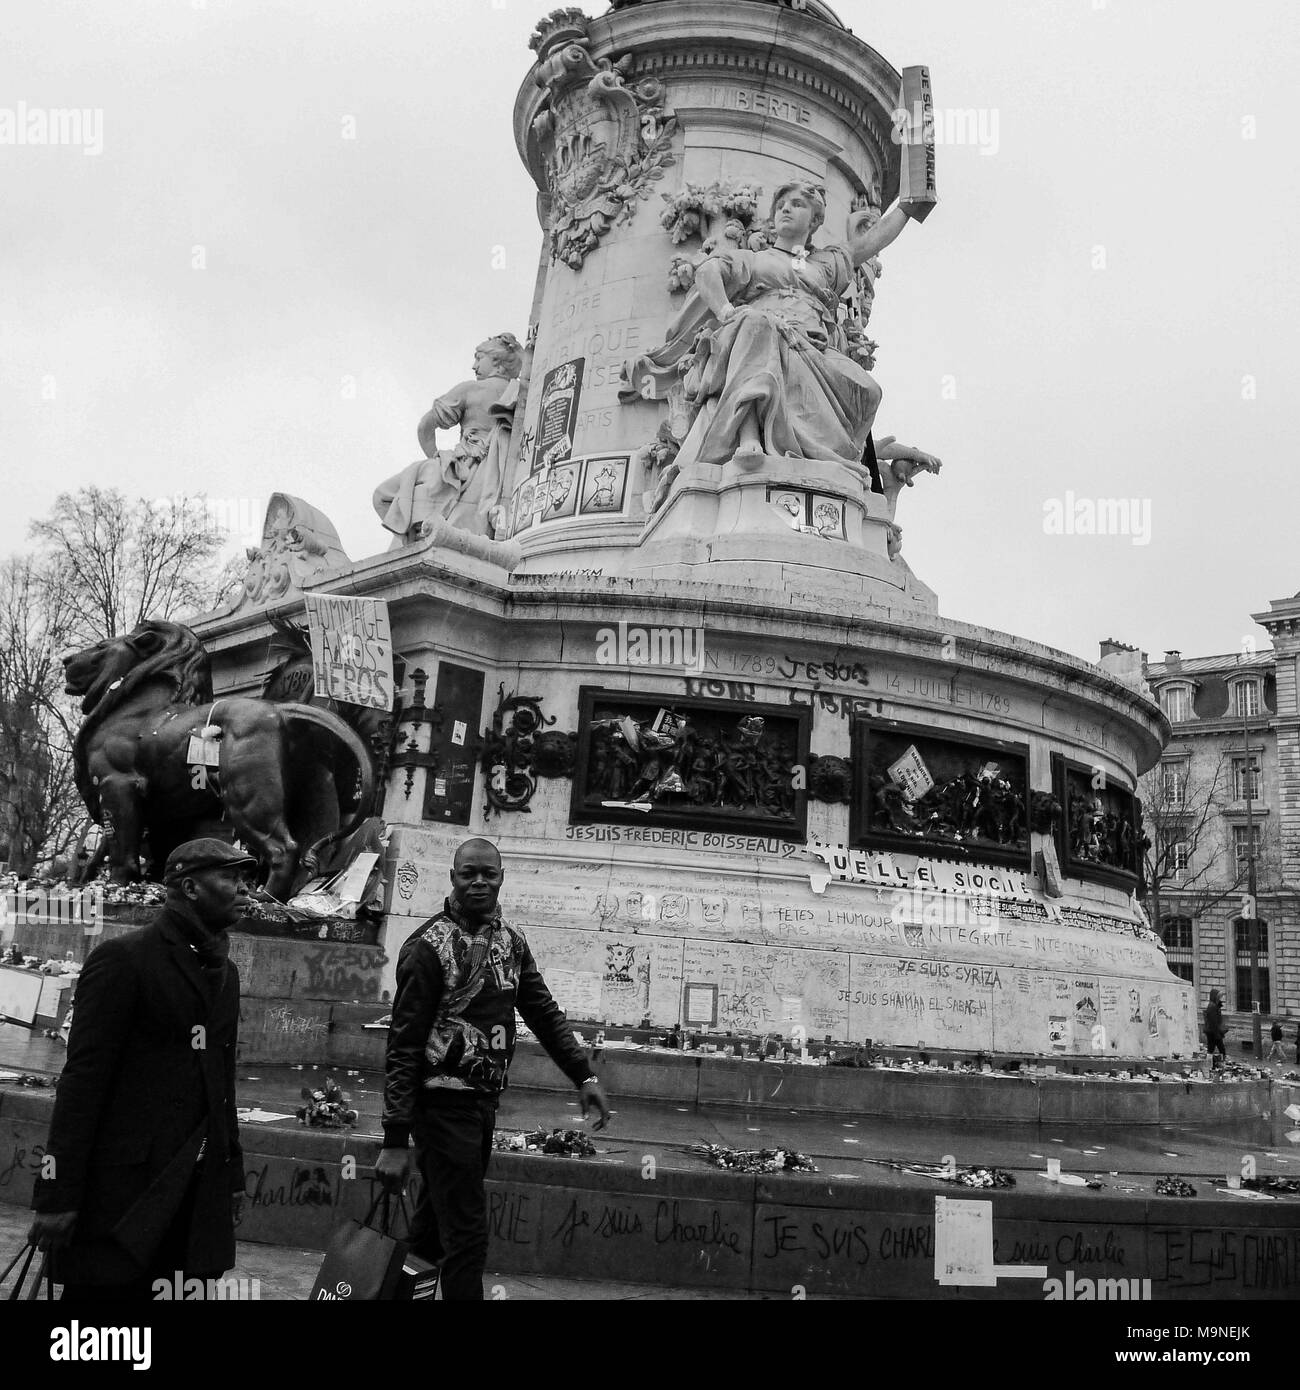 Aftermath of Charlie Terror attacks: people pay homage to the victims, Paris, FranceRepublic square - Stock Image